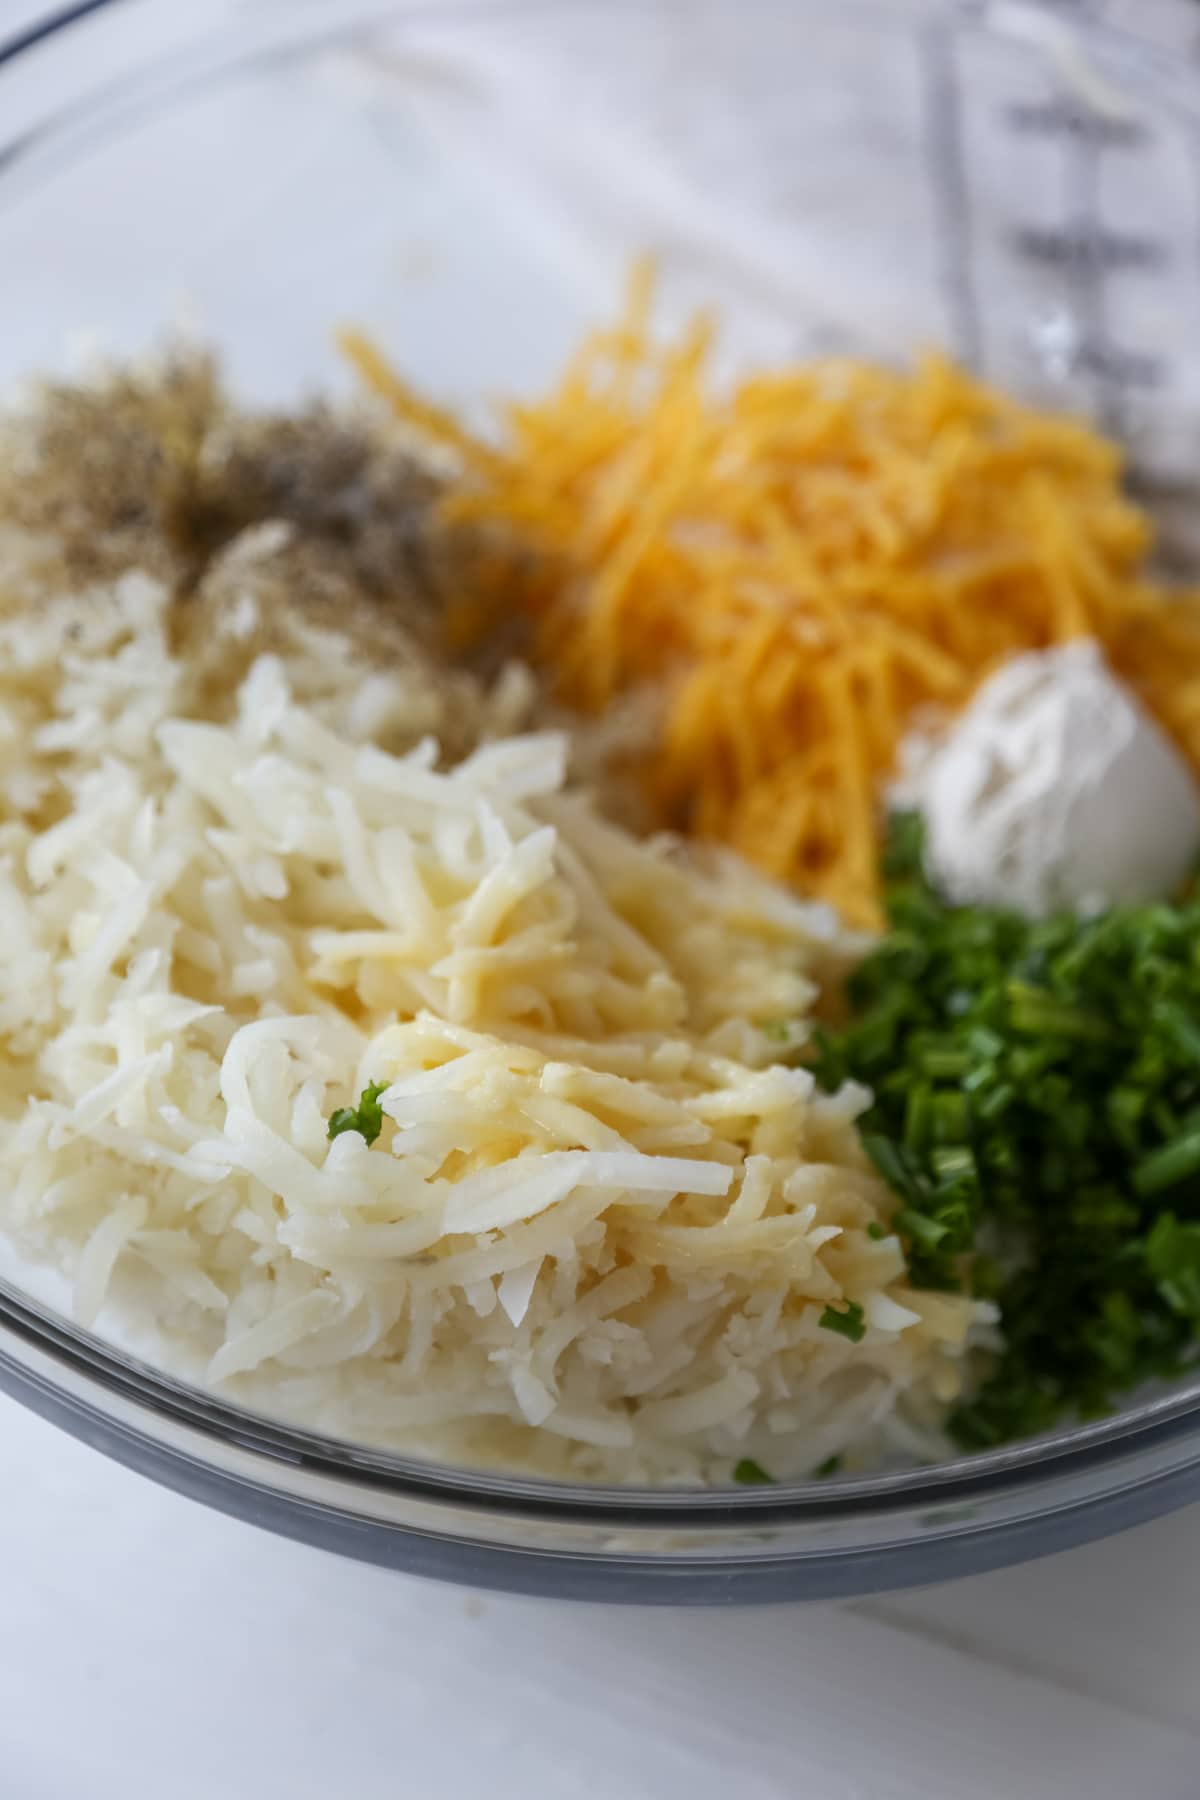 A glass bowl with shredded potato, shredded cheese, minced chives, and flour.